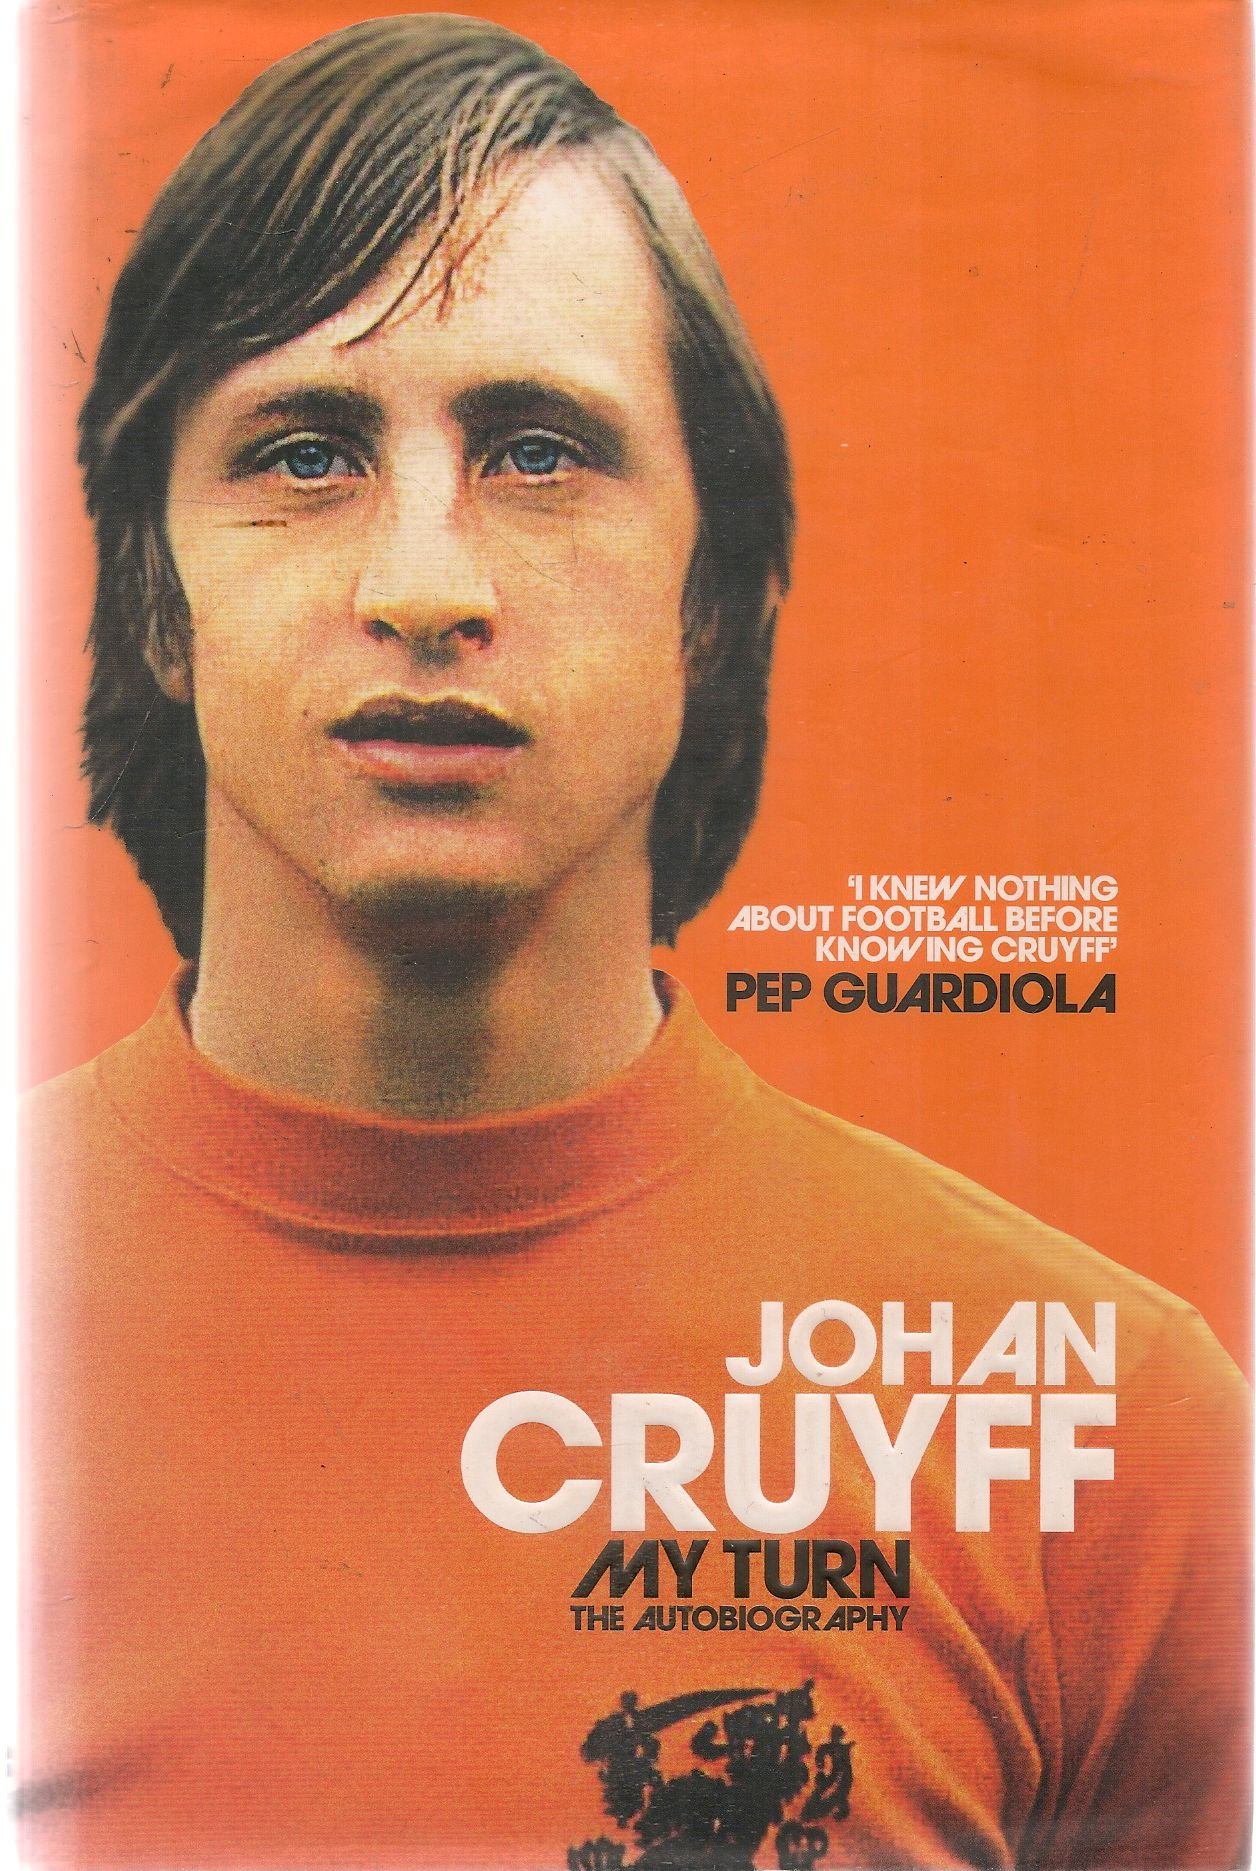 JOHAN CRUIFF - MY TURN THE AUTOBIOGRAFY - ENGLISH TEXT